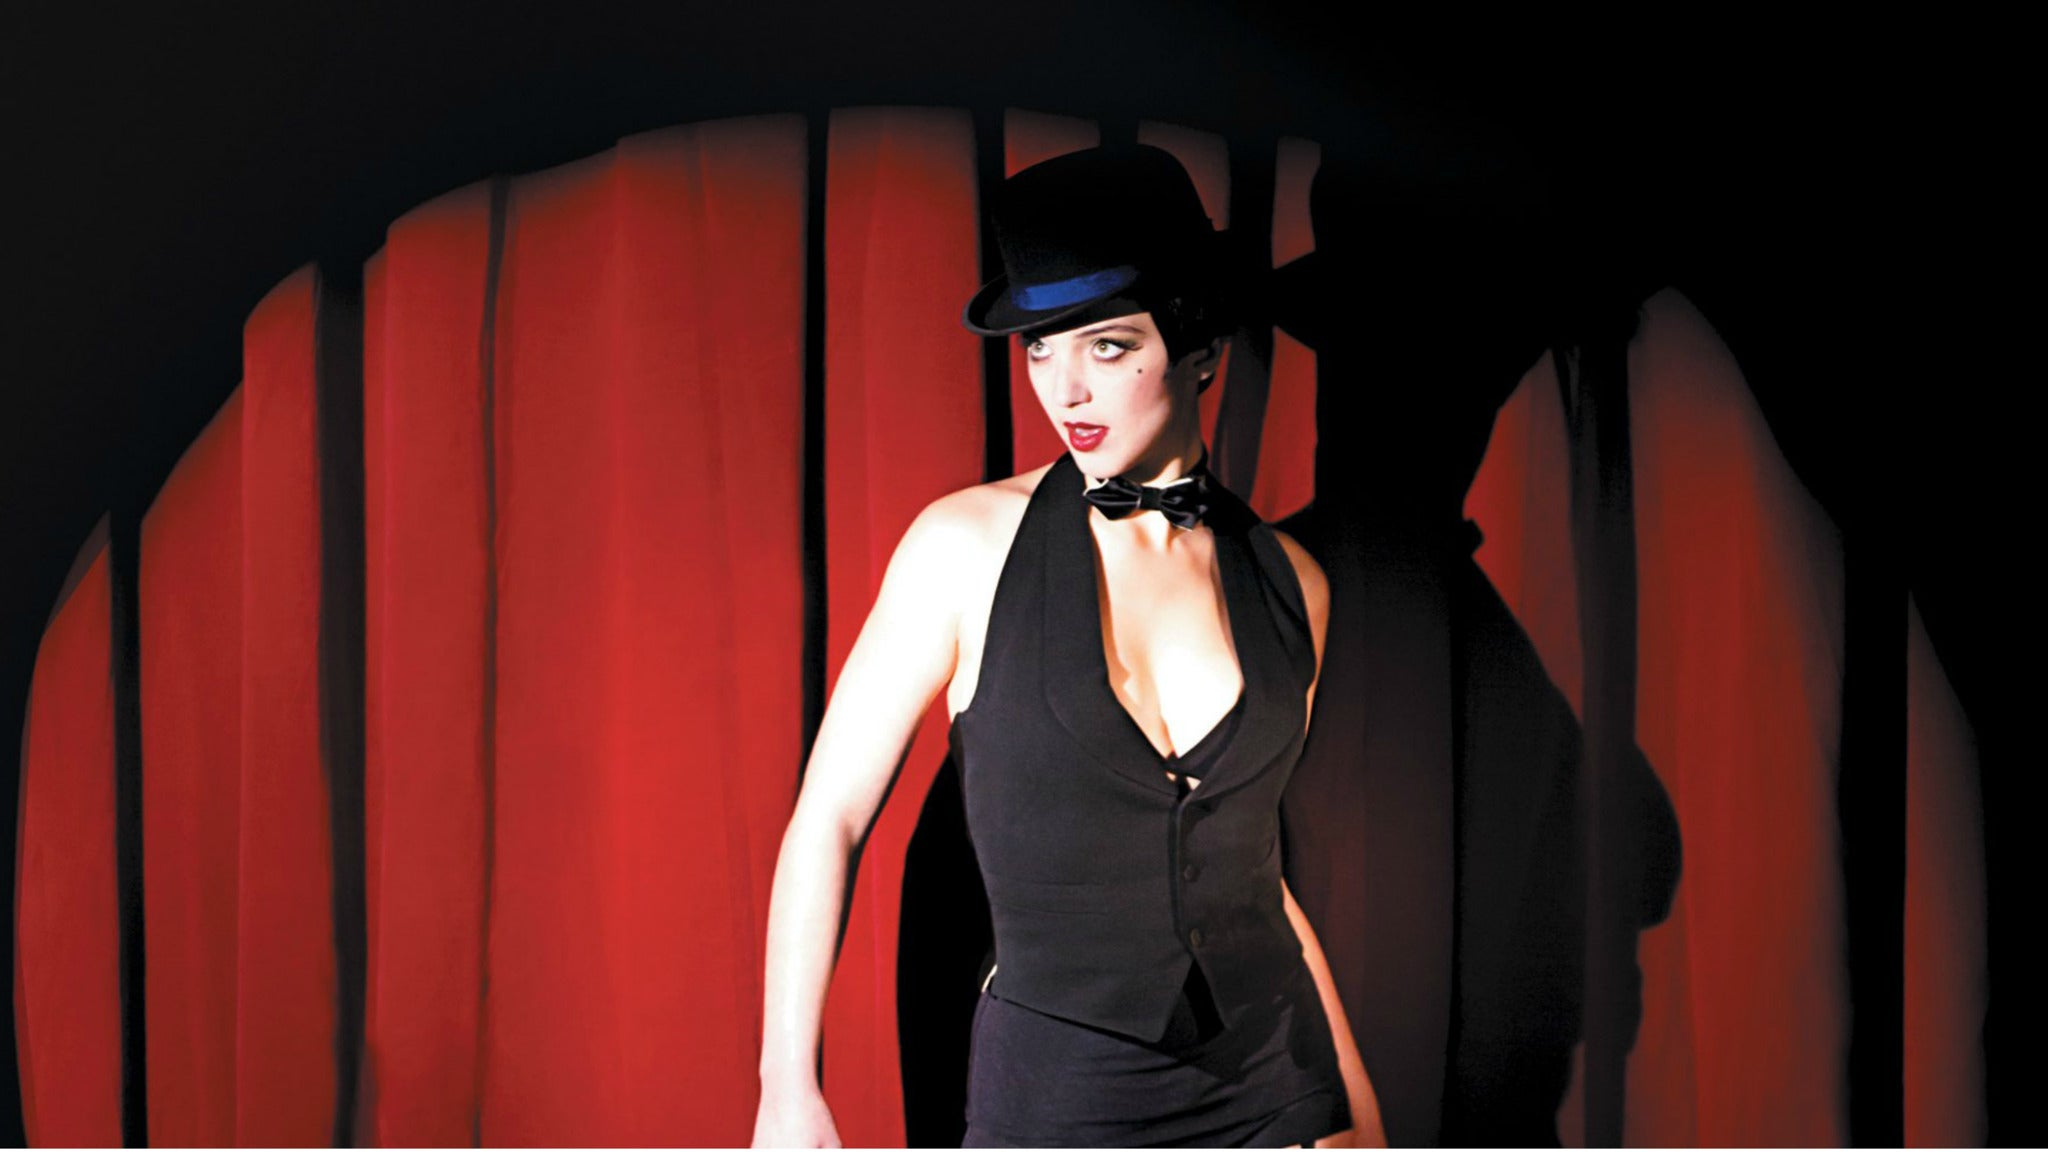 Cabaret at La Mirada Theatre for the Performing Arts - La Mirada, CA 90638